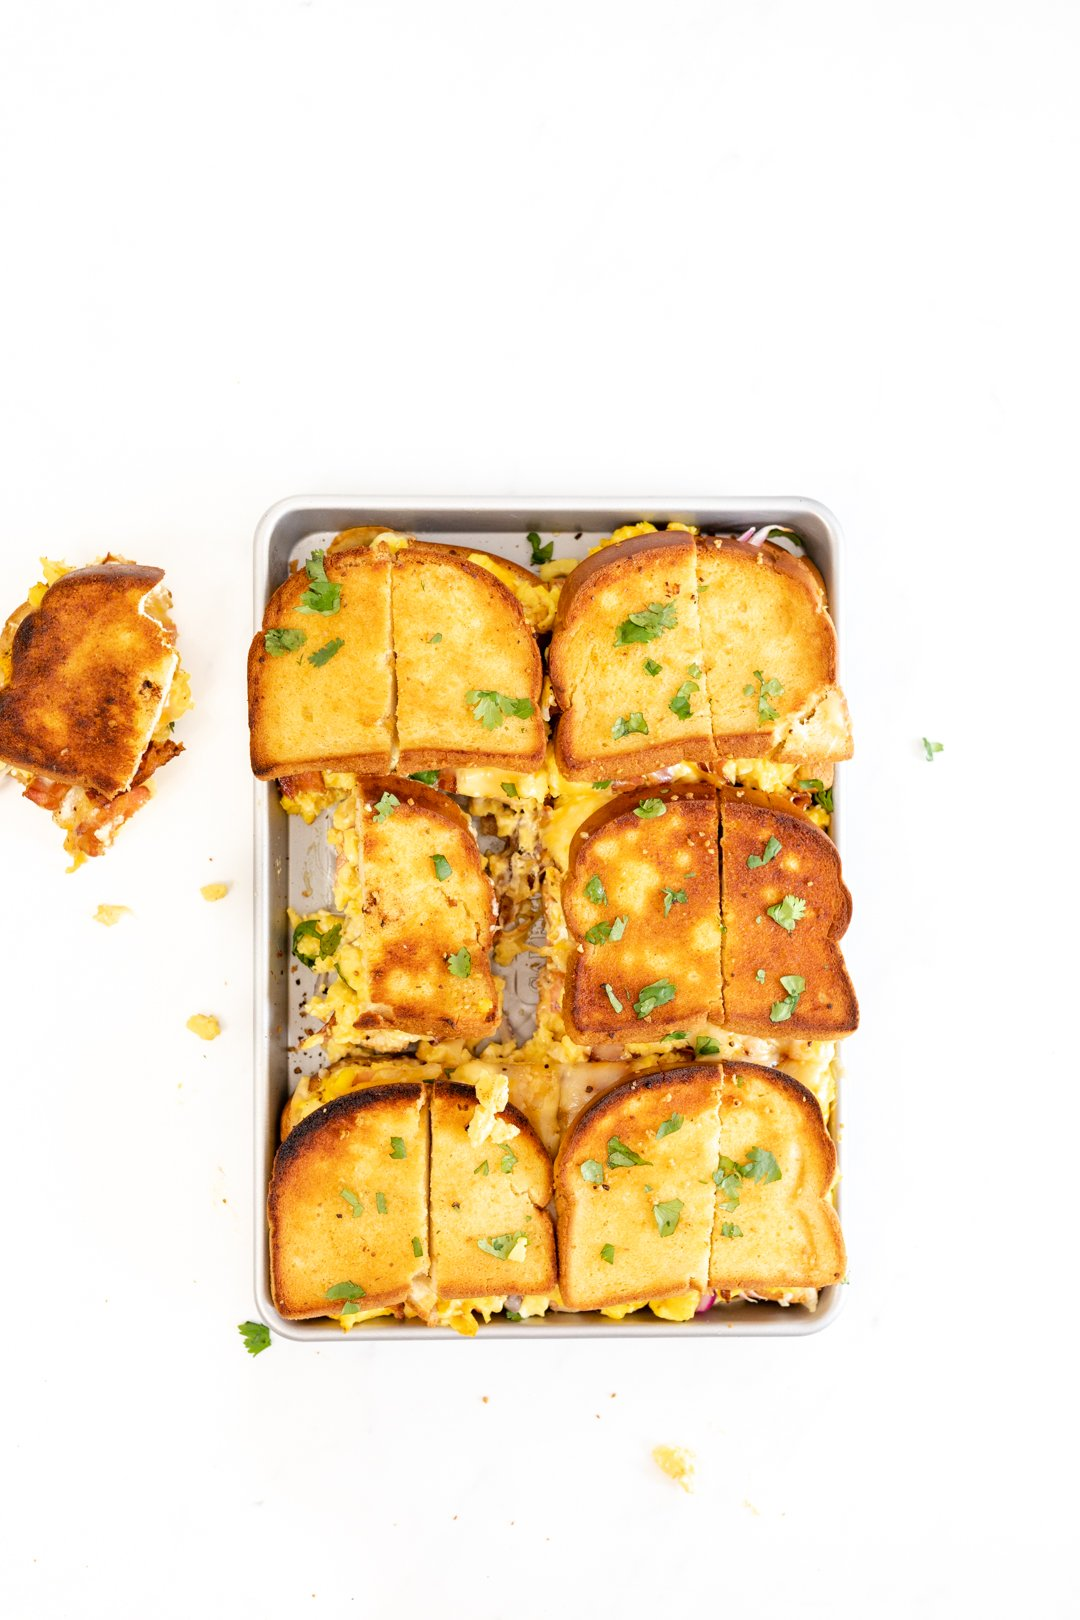 Toasted sandwiches on a baking sheet